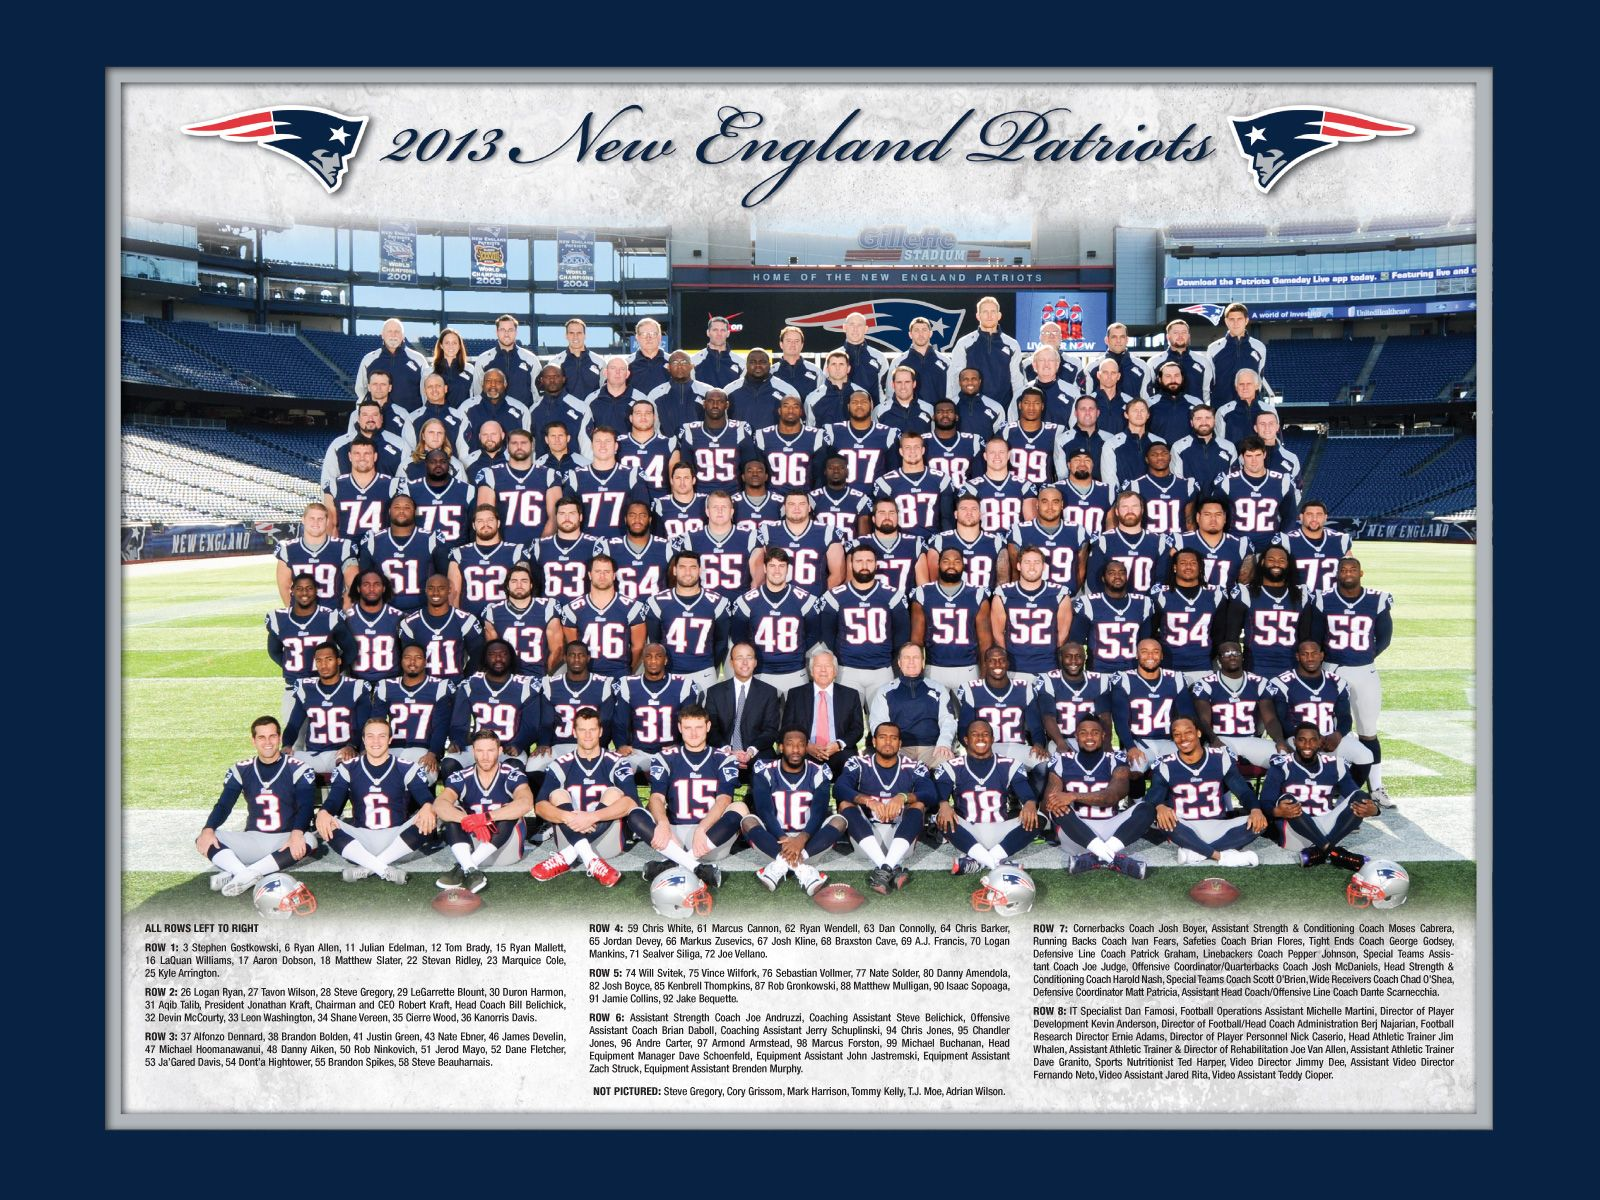 2013 New England Patriots Team Photo New England Patriots Players New England Patriots Merchandise New England Patriots